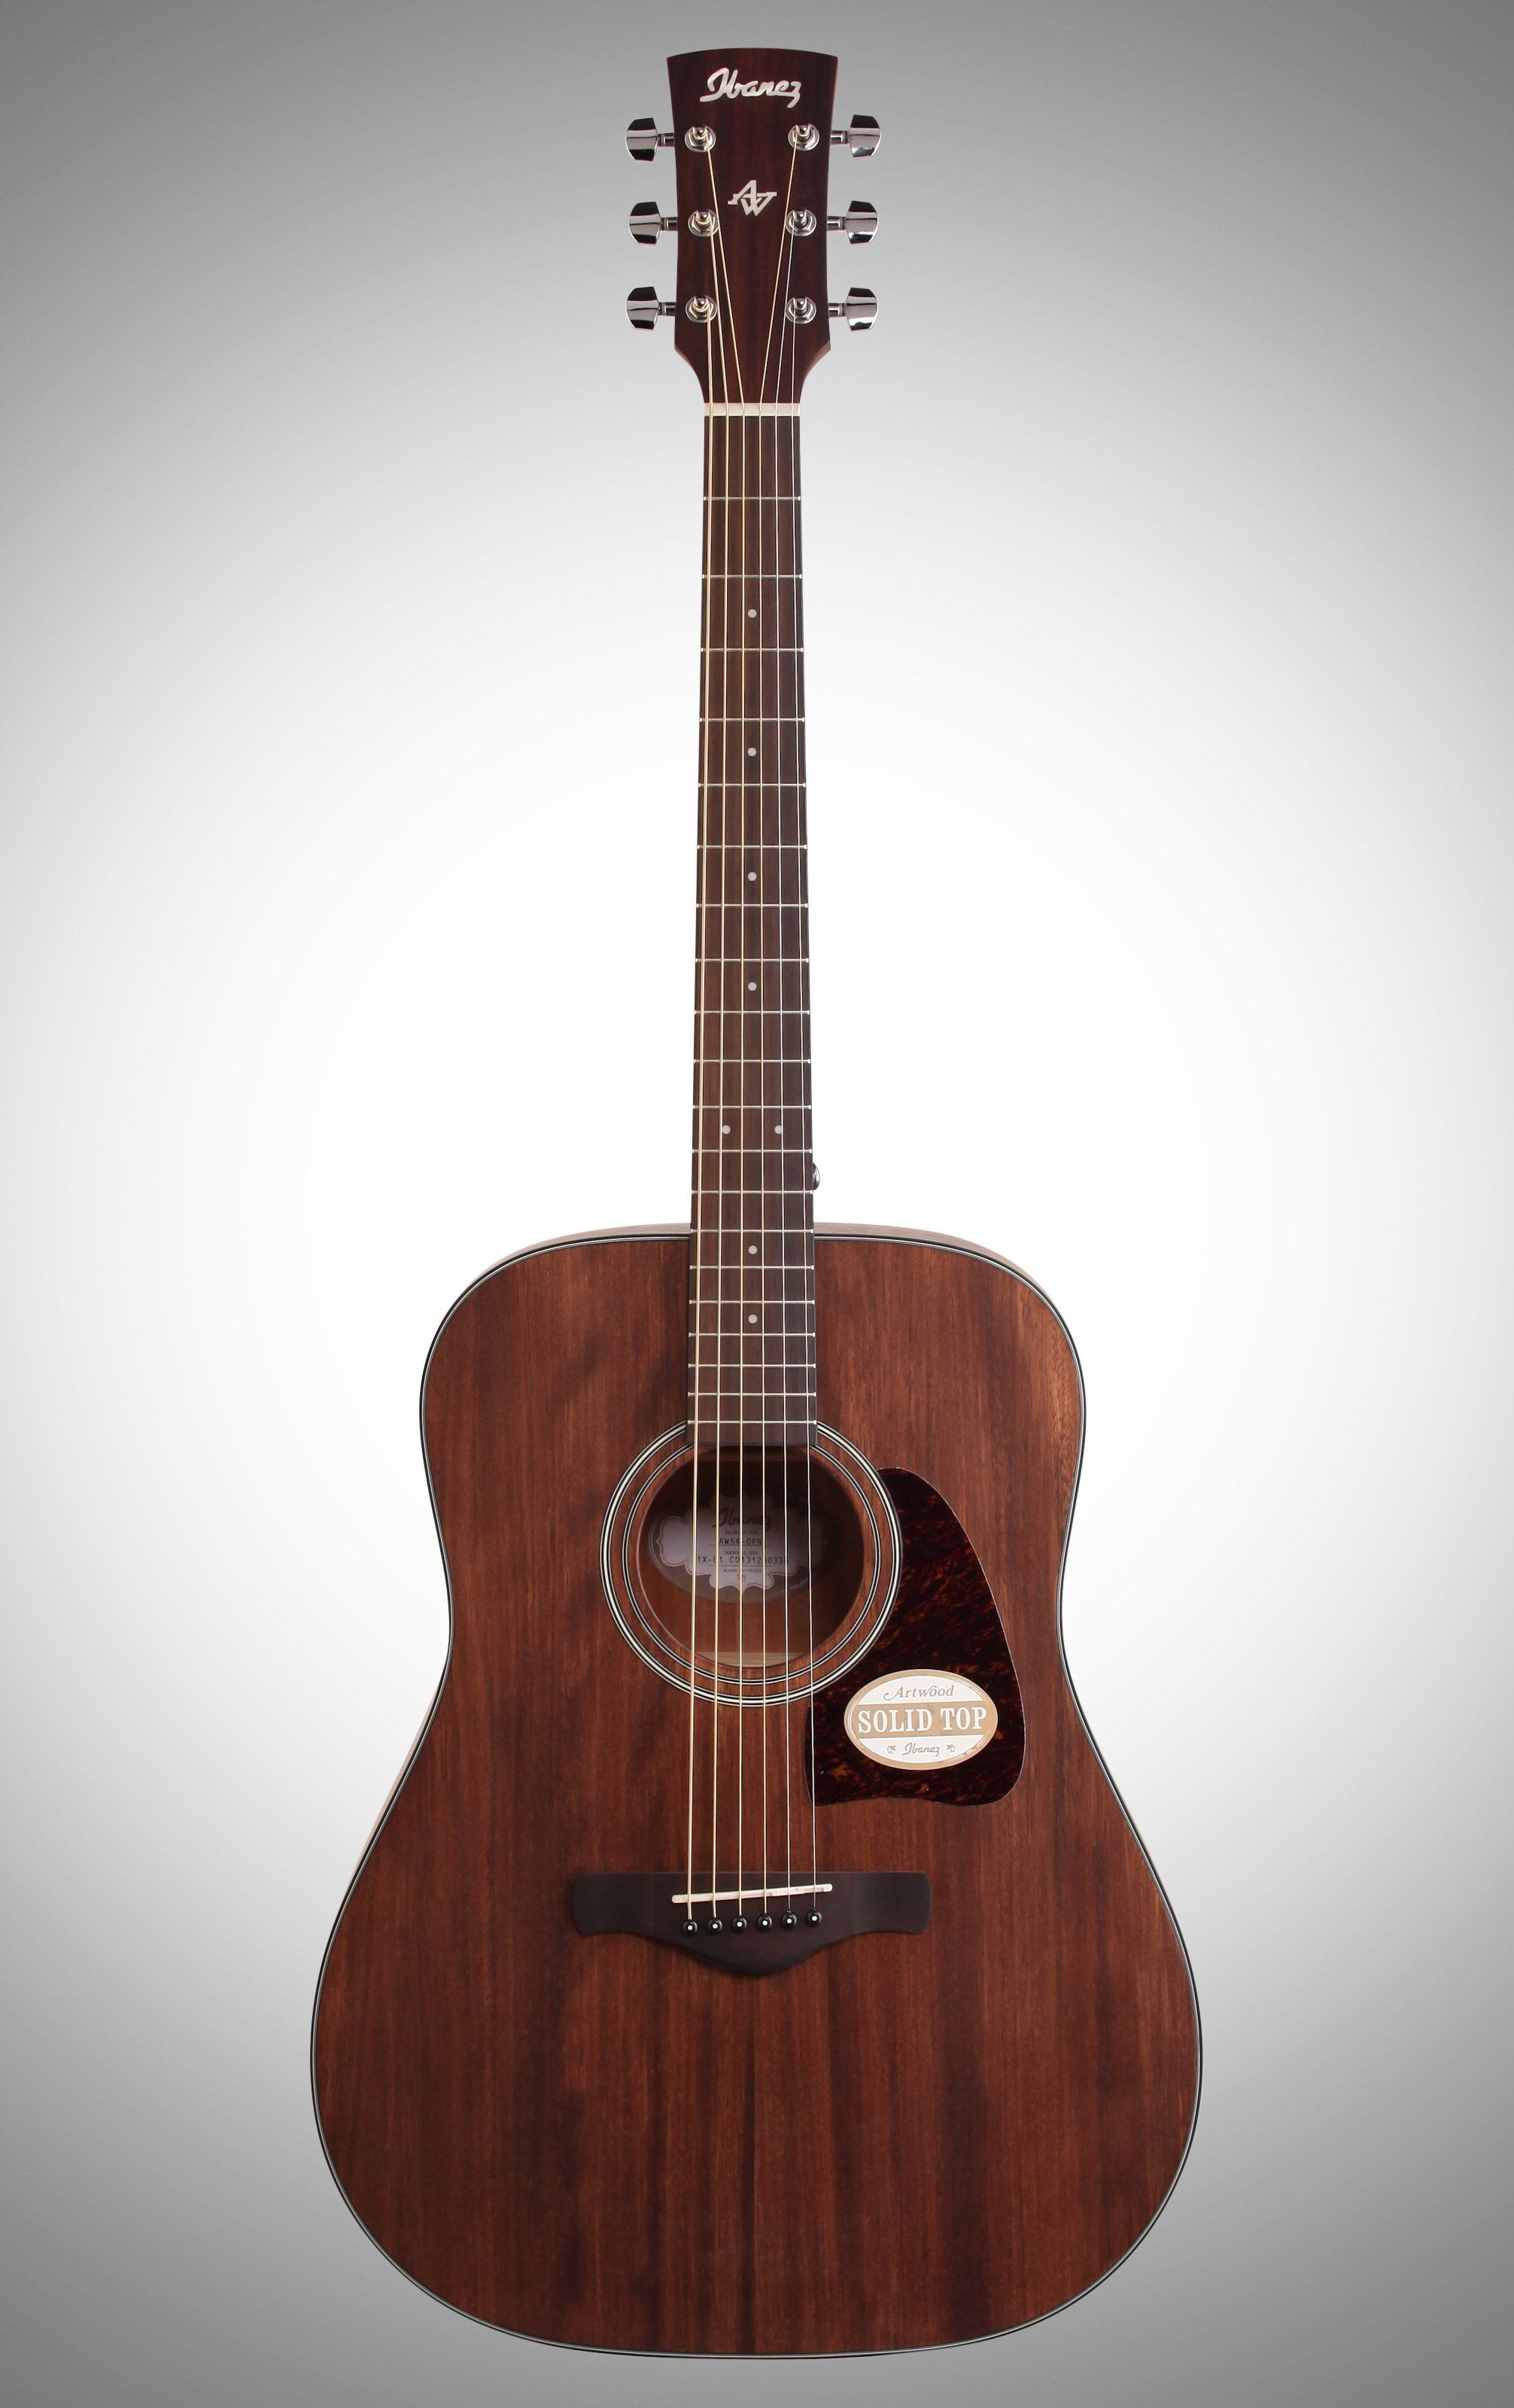 Ibanez AW54 Artwood Acoustic Guitar at zZounds